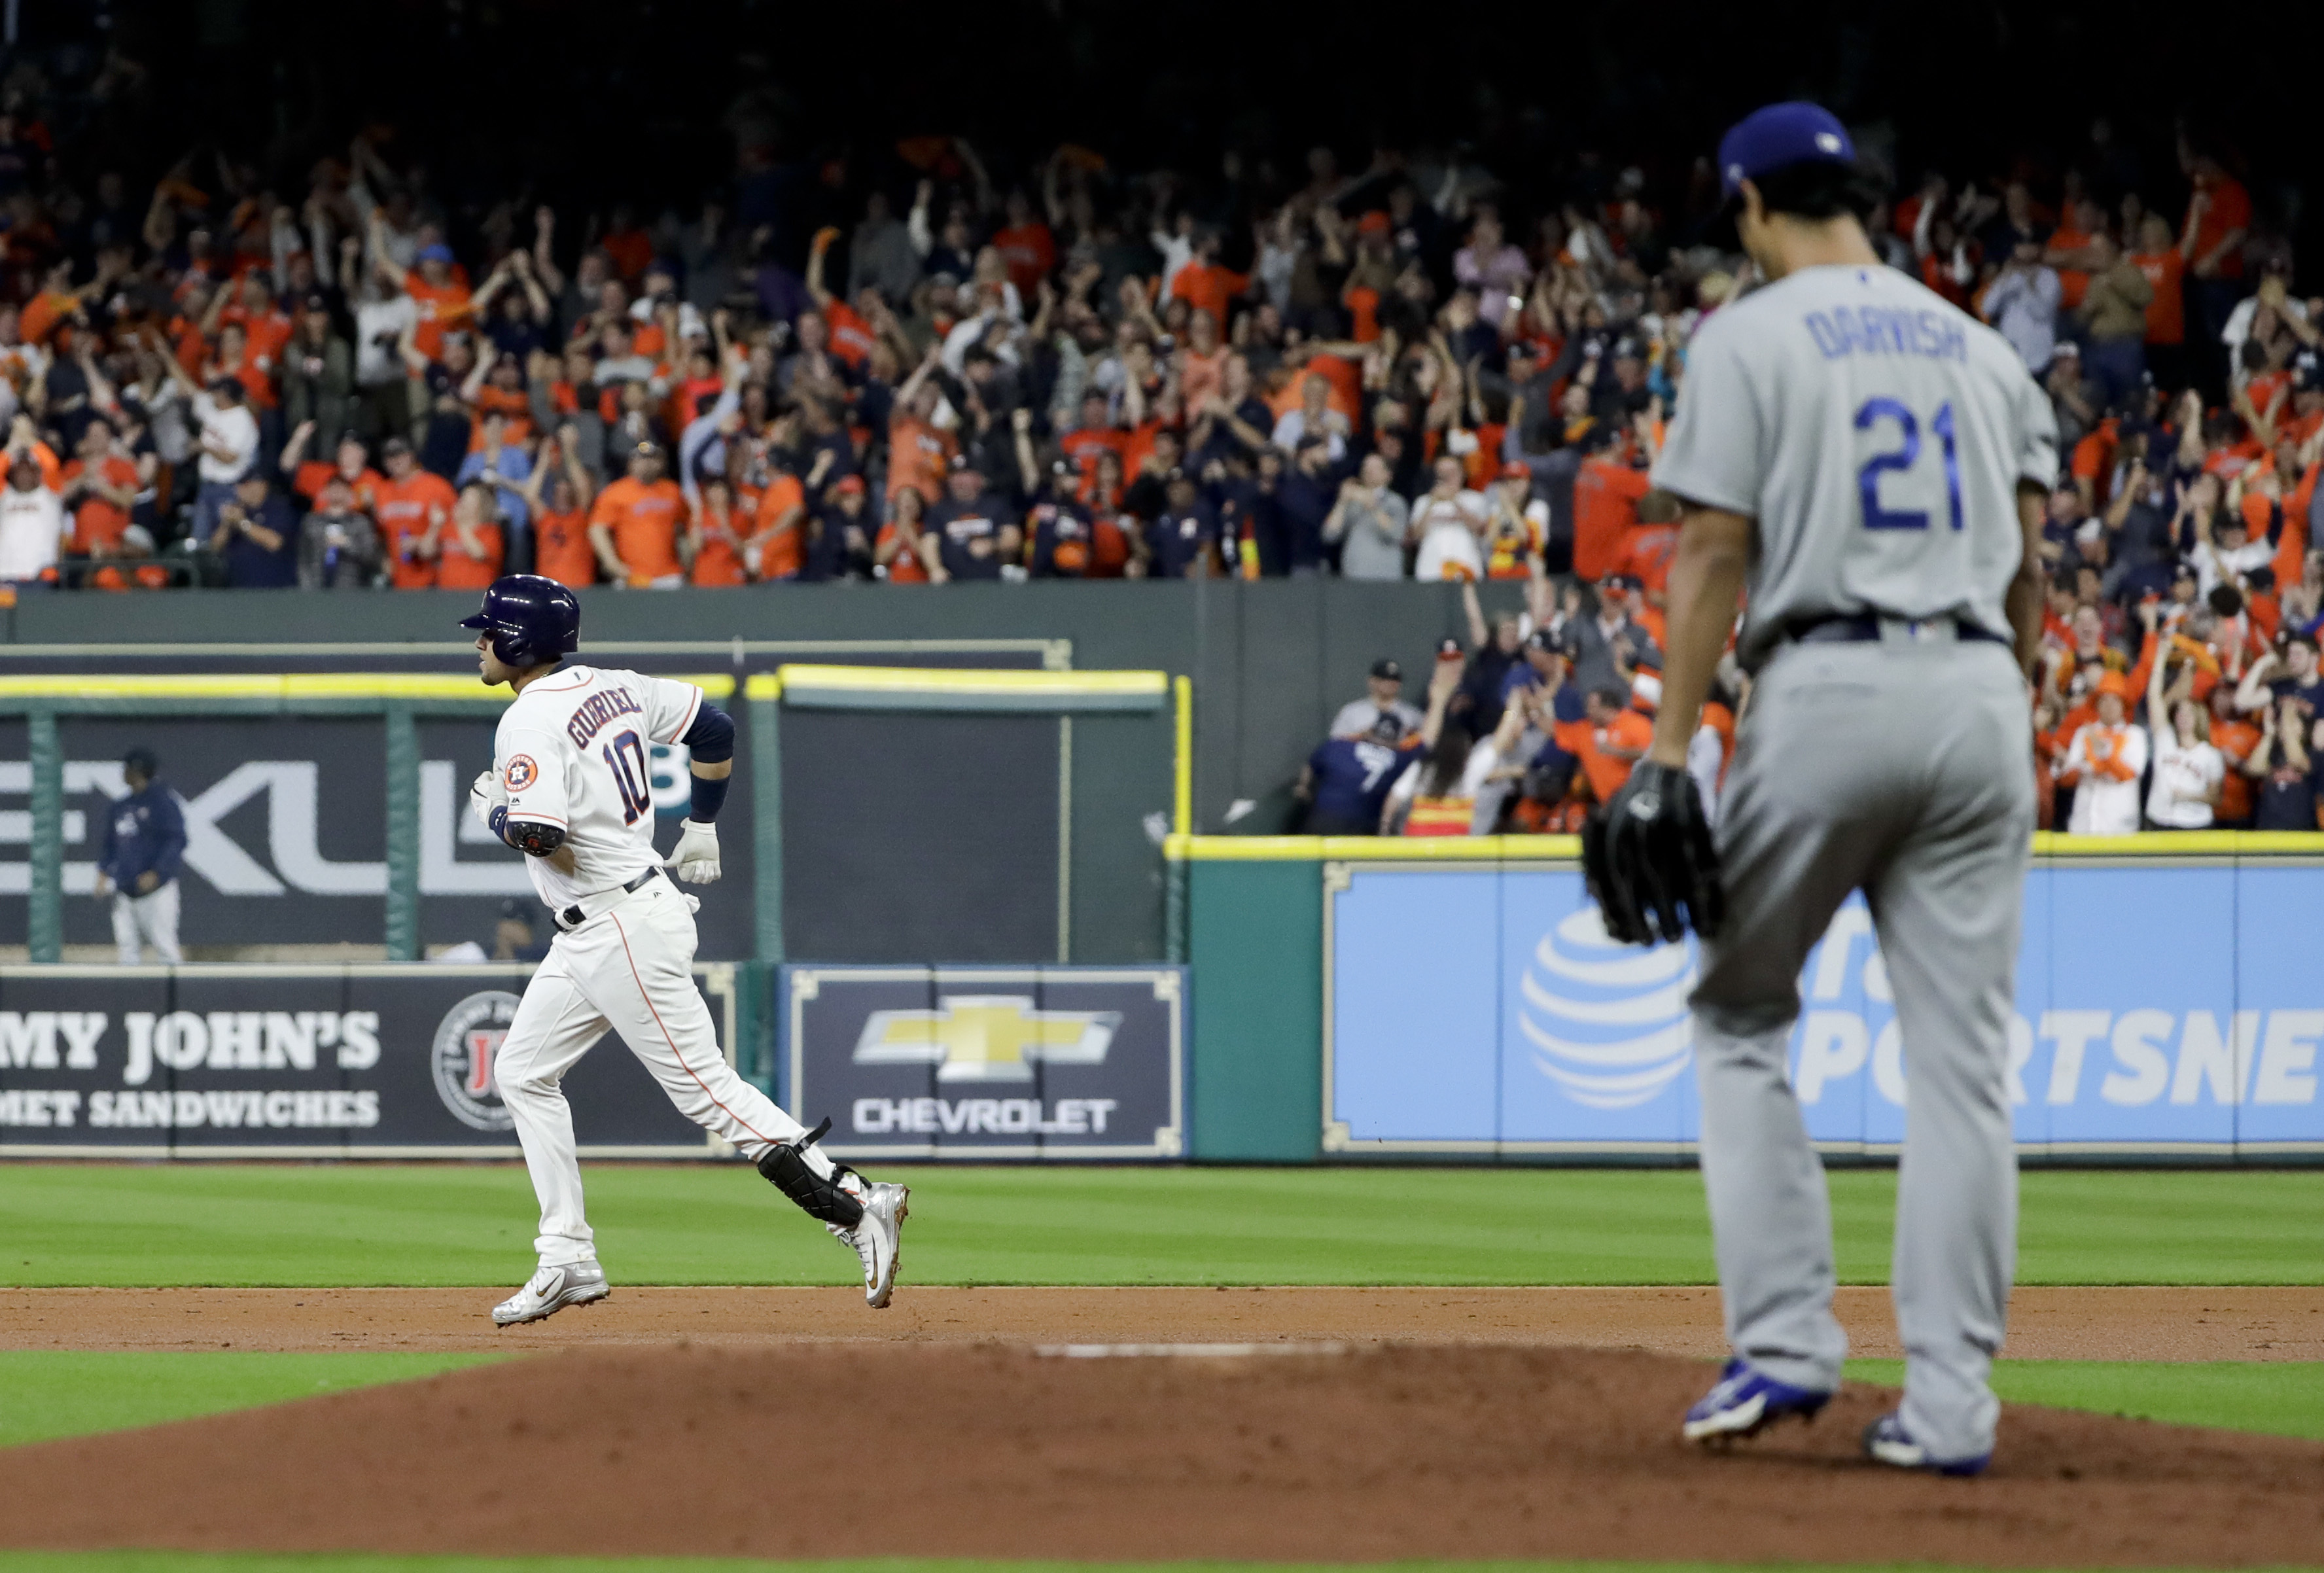 Houston Astros' Yuli Gurriel celebrates his home run past Los Angeles Dodgers starting pitcher Yu Darvish, of Japan, during the second inning of Game 3 of baseball's World Series Friday, Oct. 27, 2017, in Houston. (AP Photo/Matt Slocum)